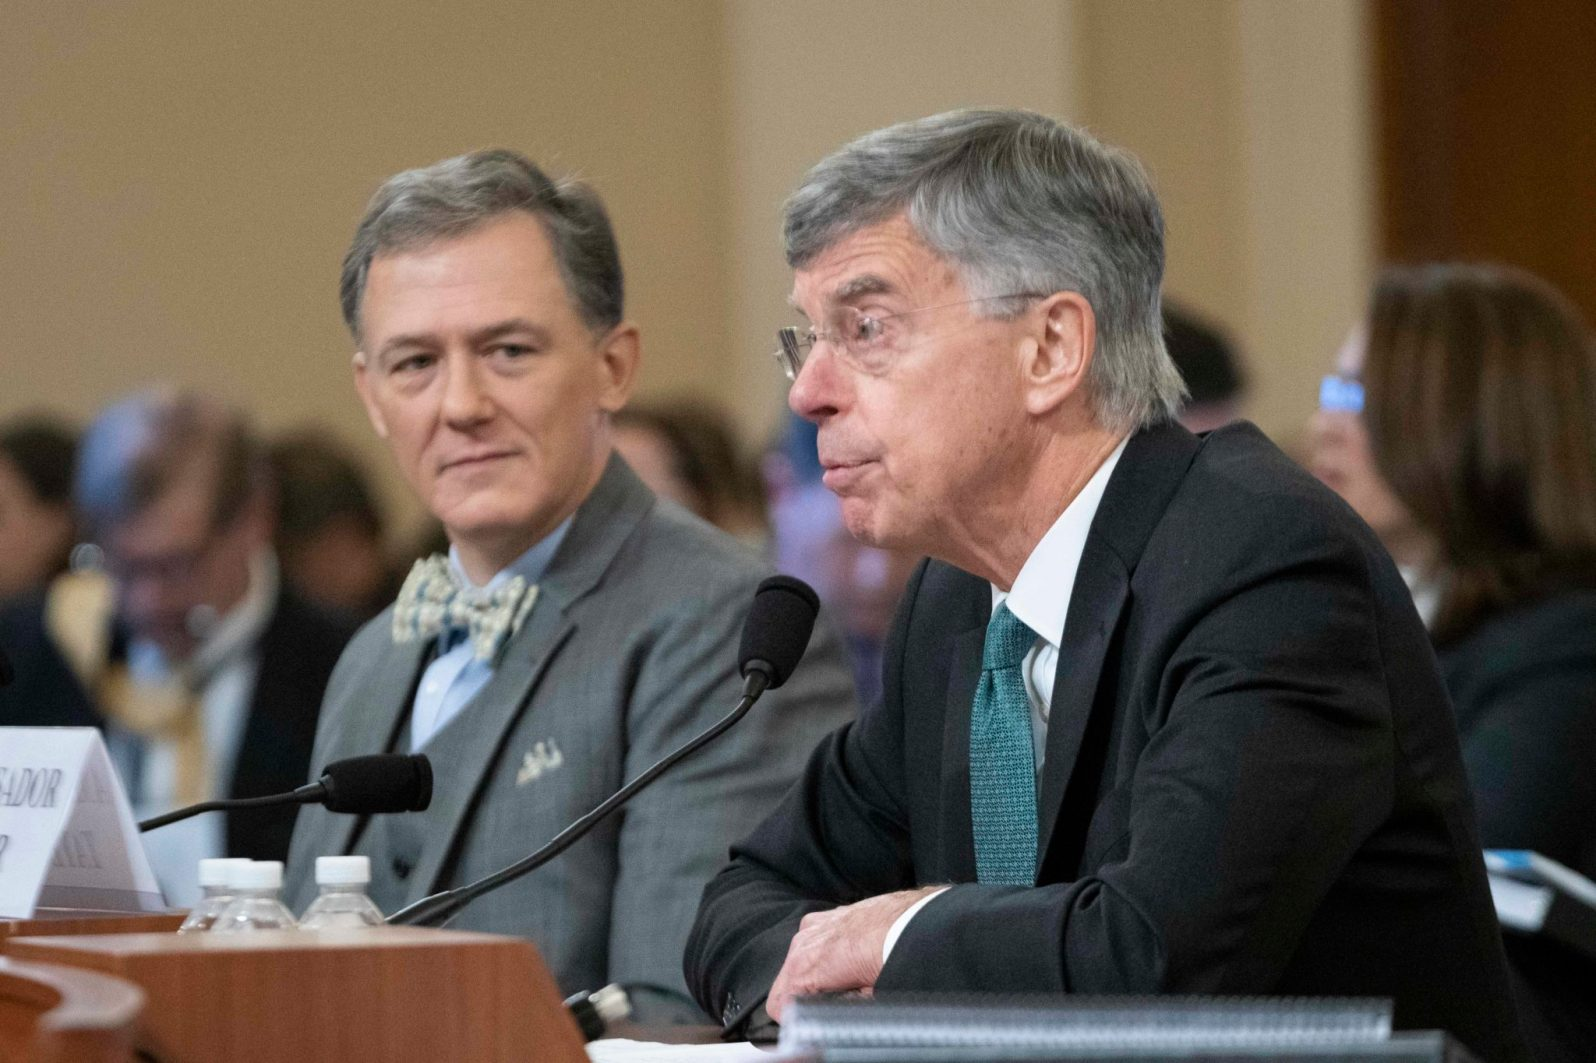 GEORGE KENT, Deputy Assistant Secretary for European and Eurasian Affairs, looks on as WILLIAM TAYLOR, former Ambassador of the United States to Ukraine, speaks during their joint testimony before the House Intelligence Committee on the first day of public impeachment hearings against President Donald Trump, November 13, 2019